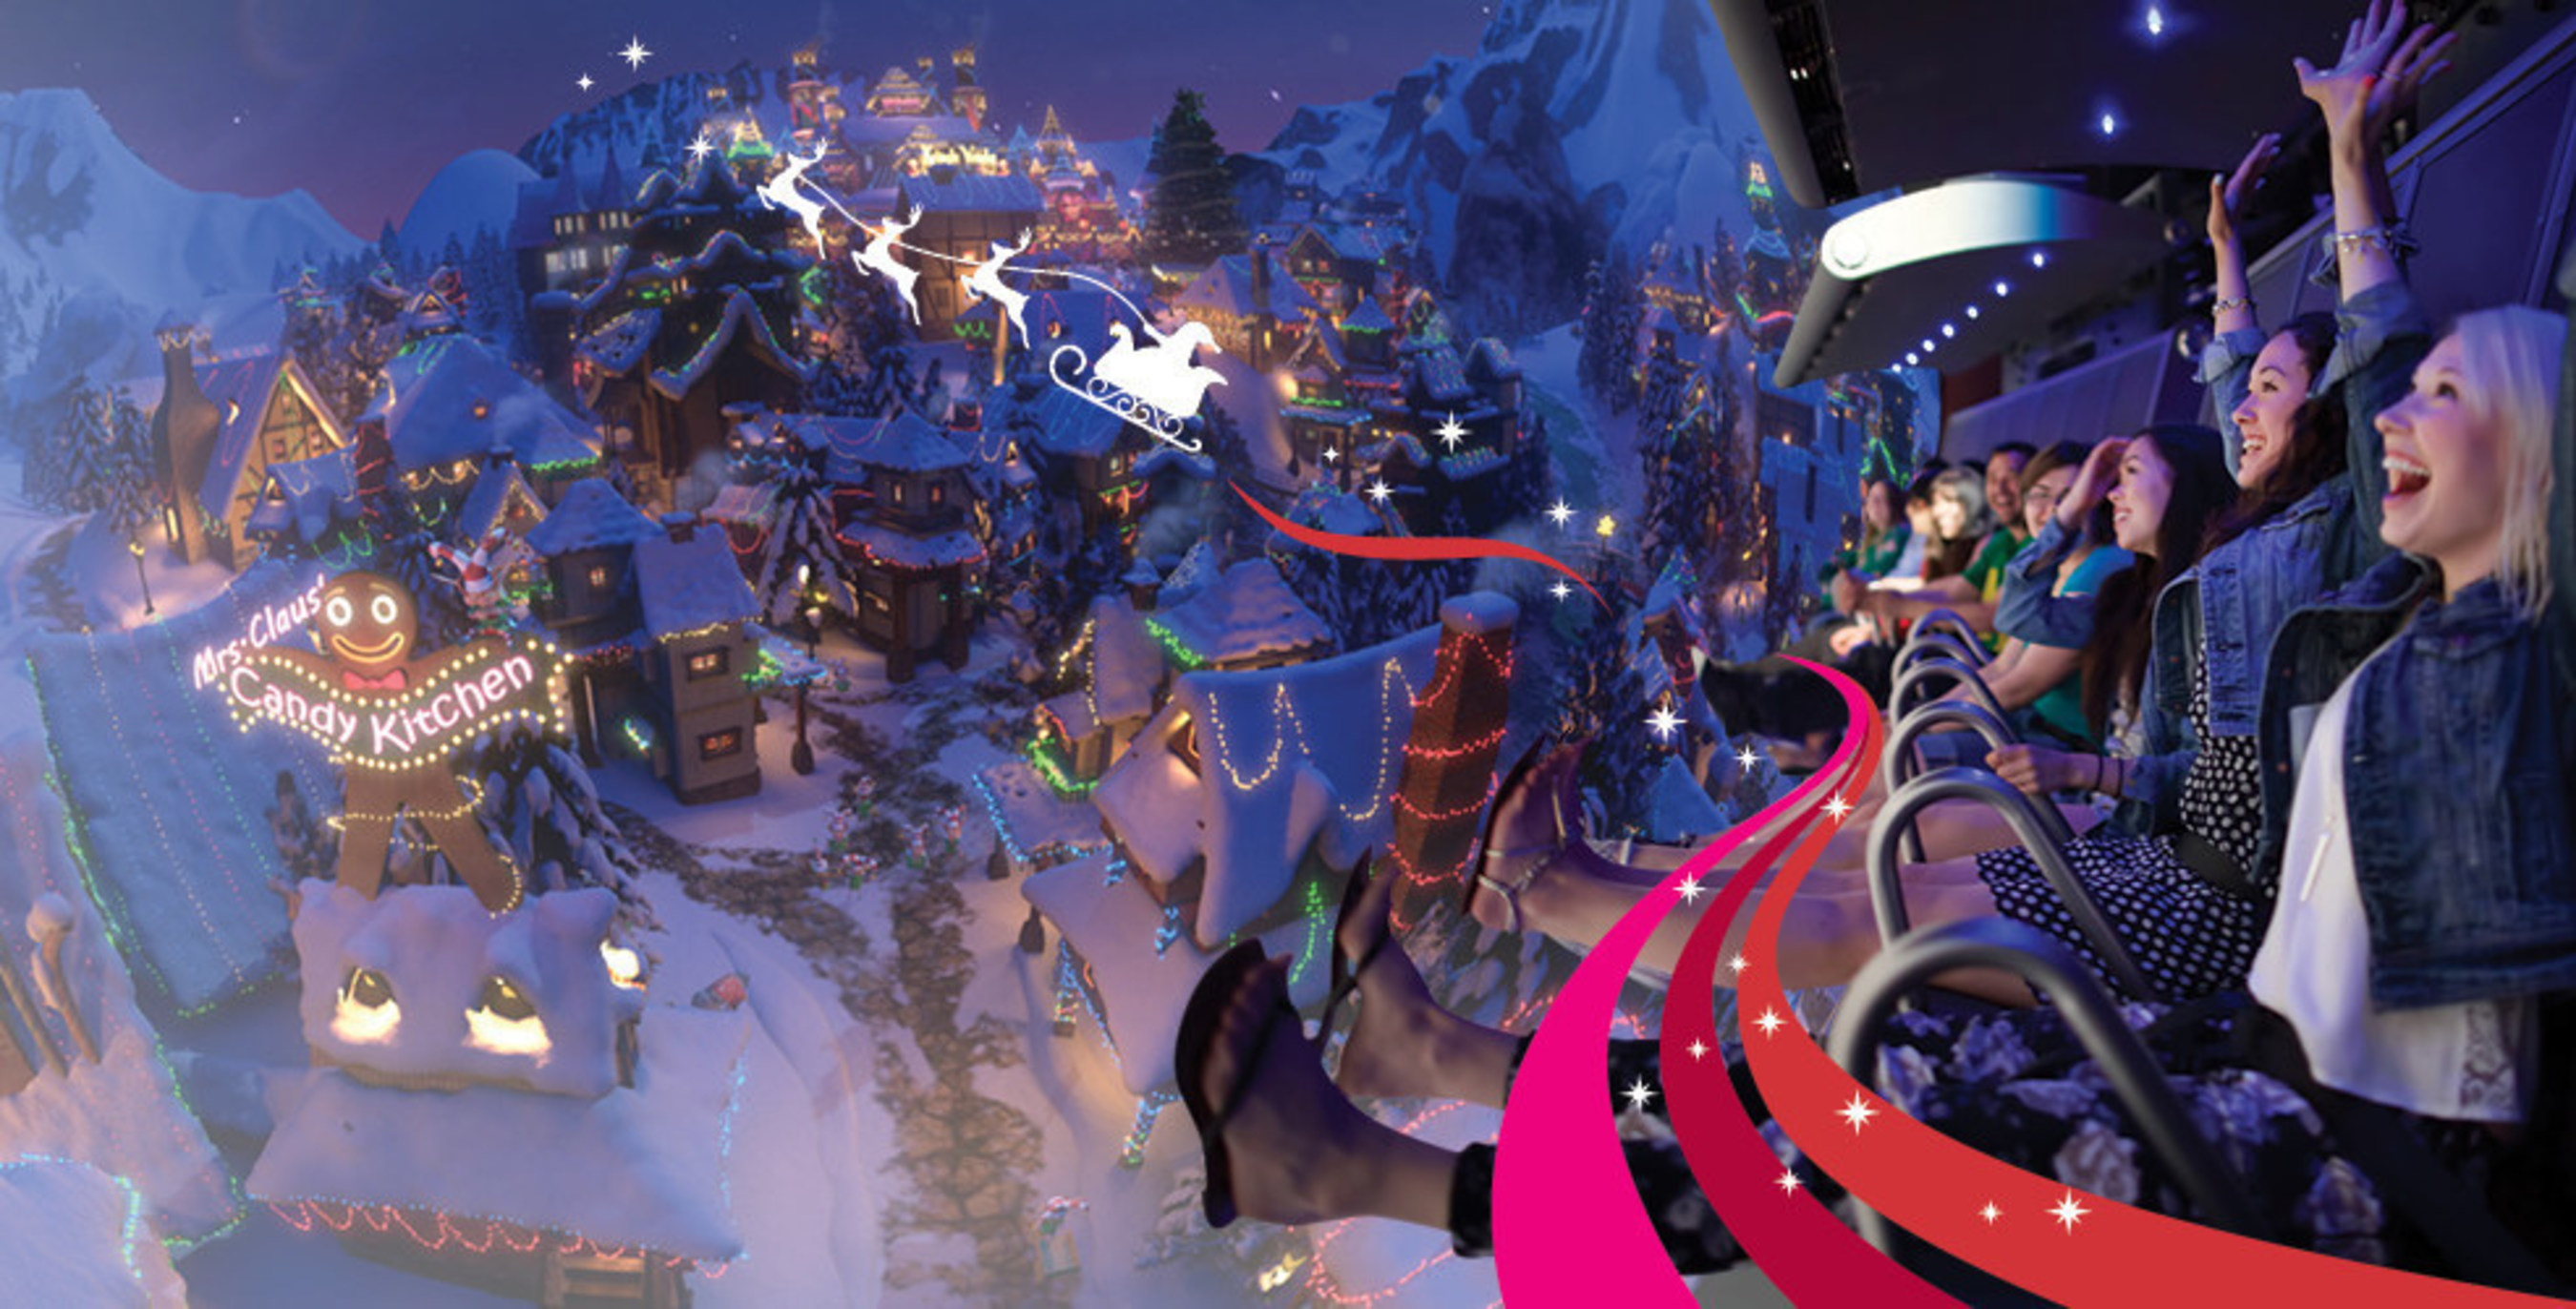 Guests fly to the North Pole on FlyOver America's Christmas ride located at the Mall of America.